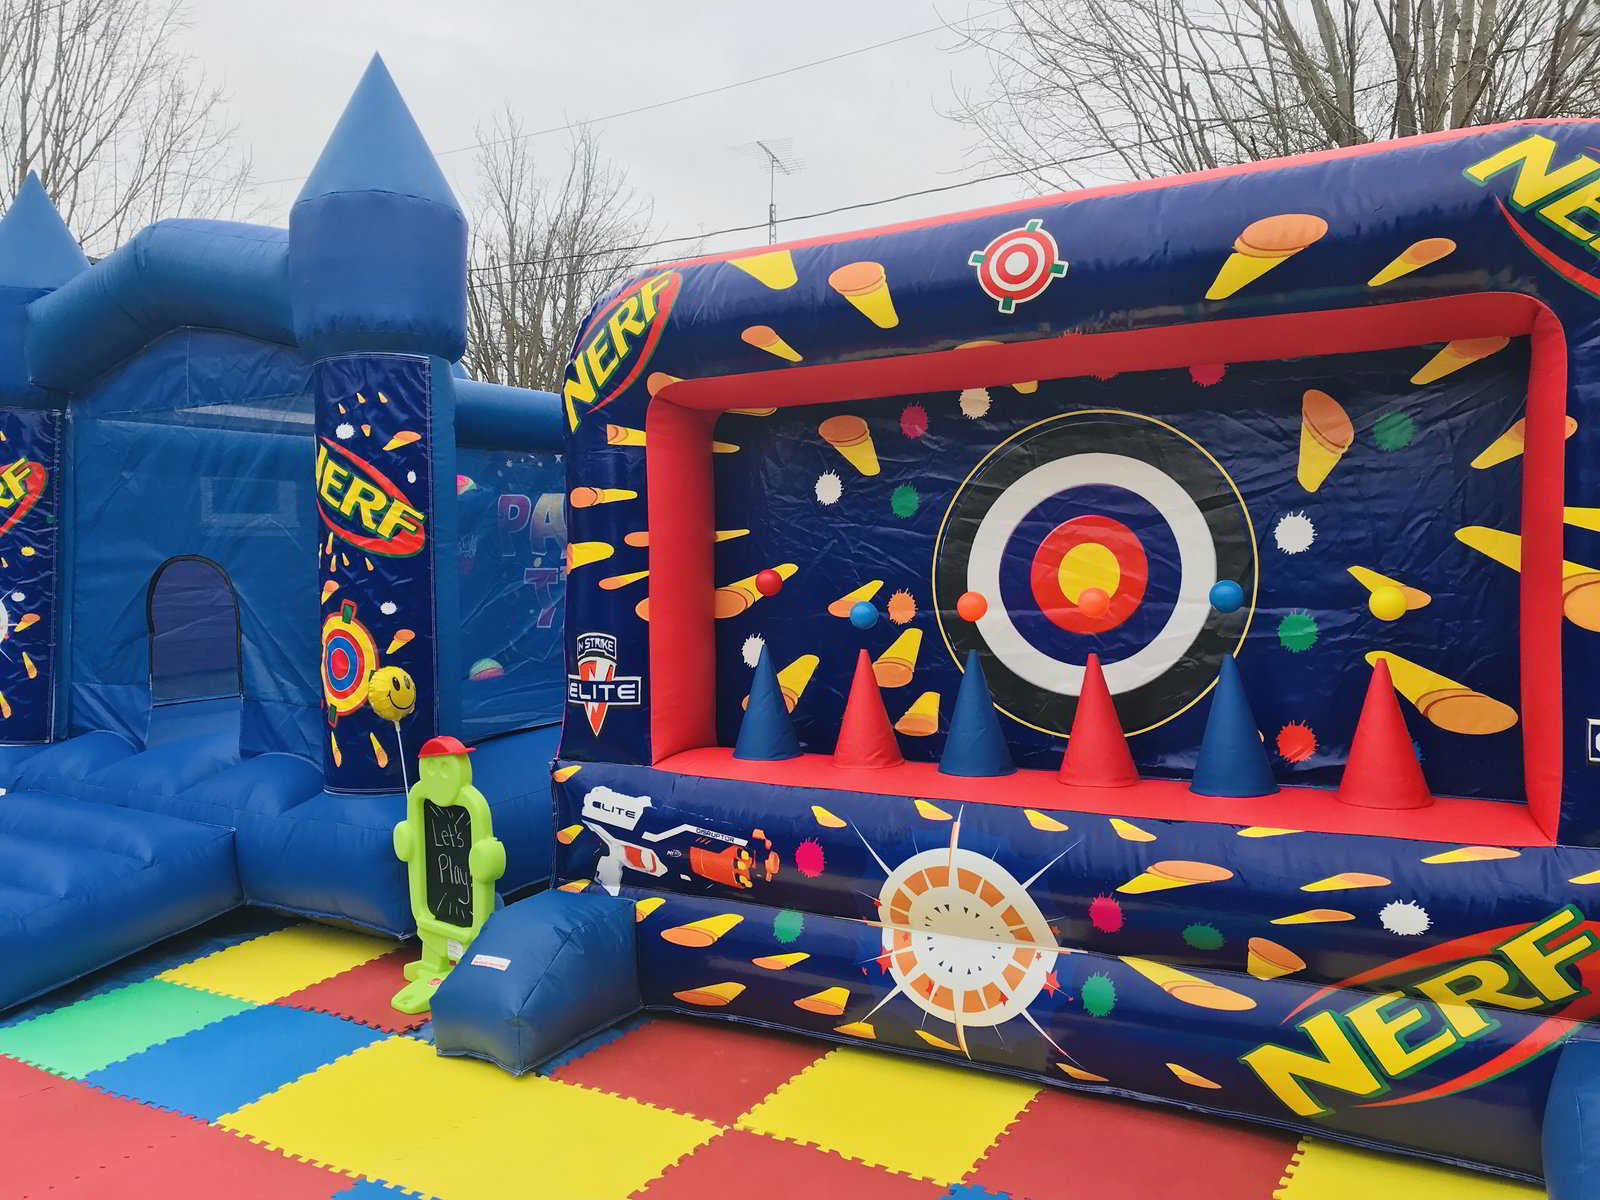 Nerf Bouncy House Combo with Nerf Target Shooter